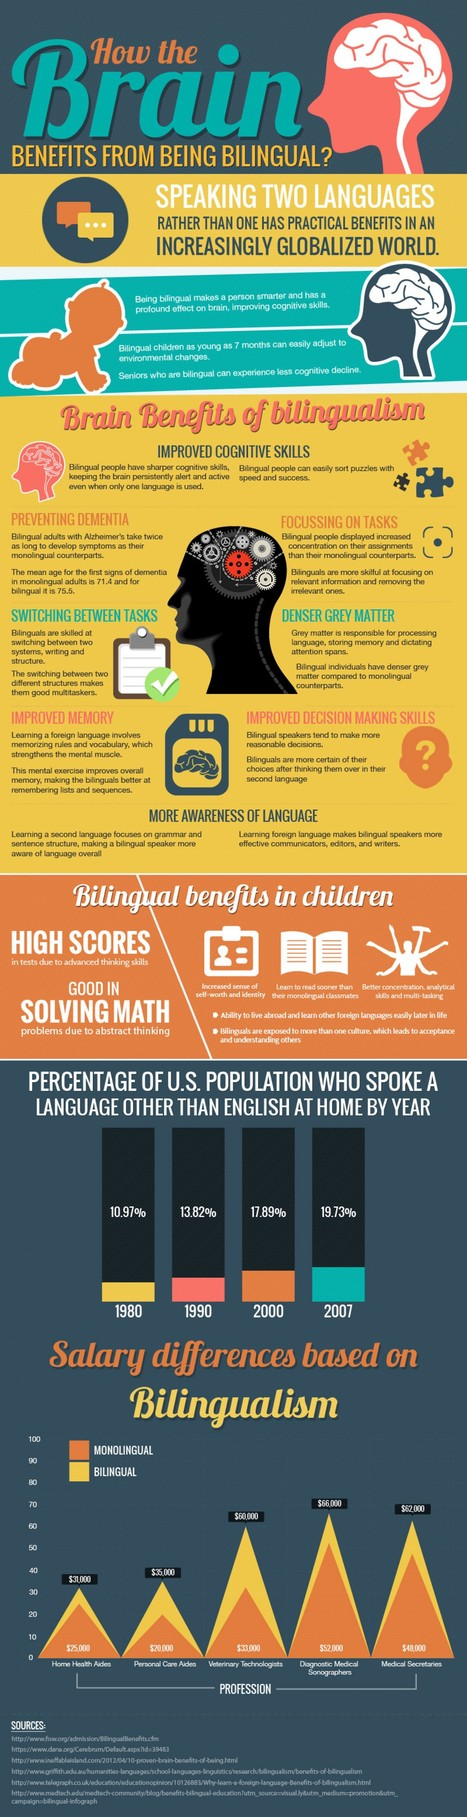 How the Brain Benefits from Being Bilingual | Educating English Language Learners | Scoop.it